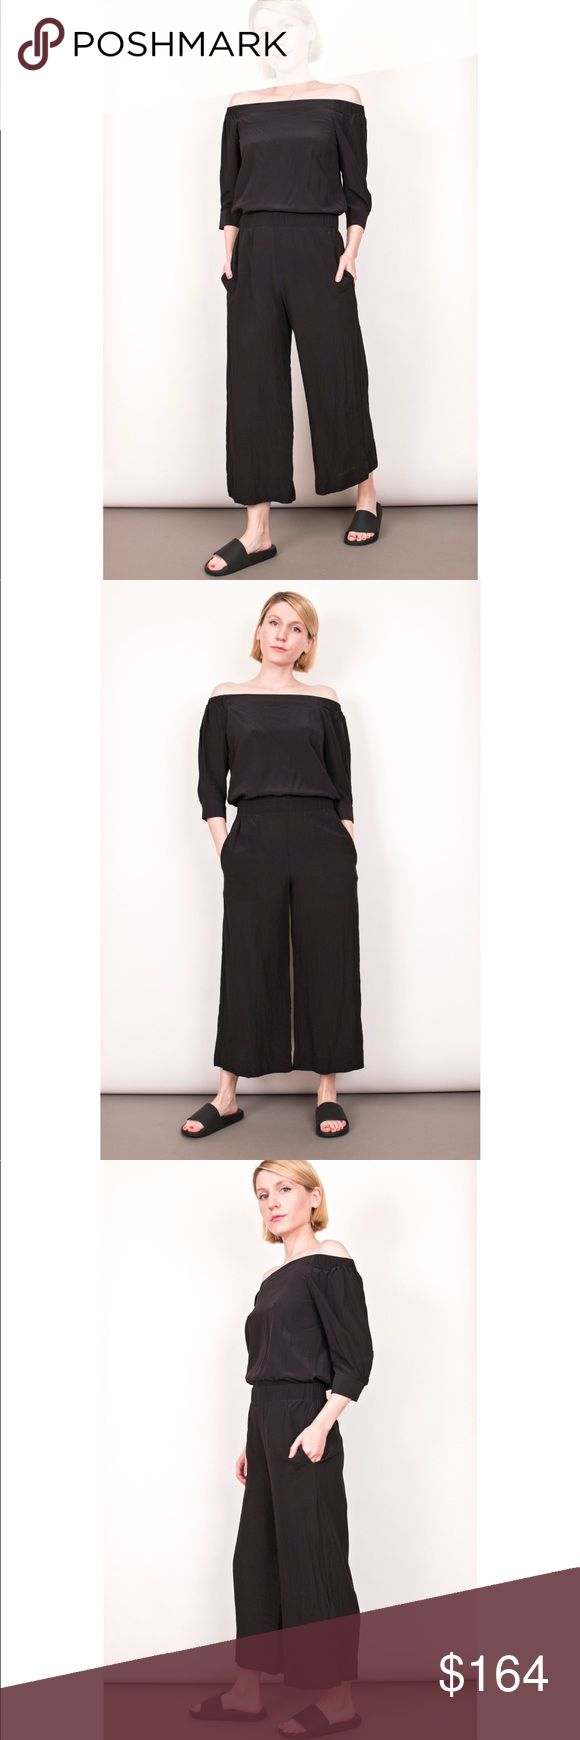 """Theory Faley black silk off the shoulder jumpsuit Theory """"Faley Mosaic"""" silk jumpsuit. Black off the shoulder with stretch waist detail. Side pockets. Minimalist cut. Wide leg crop ankle. Size 0 Model stands 5'4 for reference - Item photographed is of the item for sale  Sleeve-14 Bust-34 Waist-26 Rise-11 Inseam-22 Length-42 Theory Pants Jumpsuits & Rompers"""